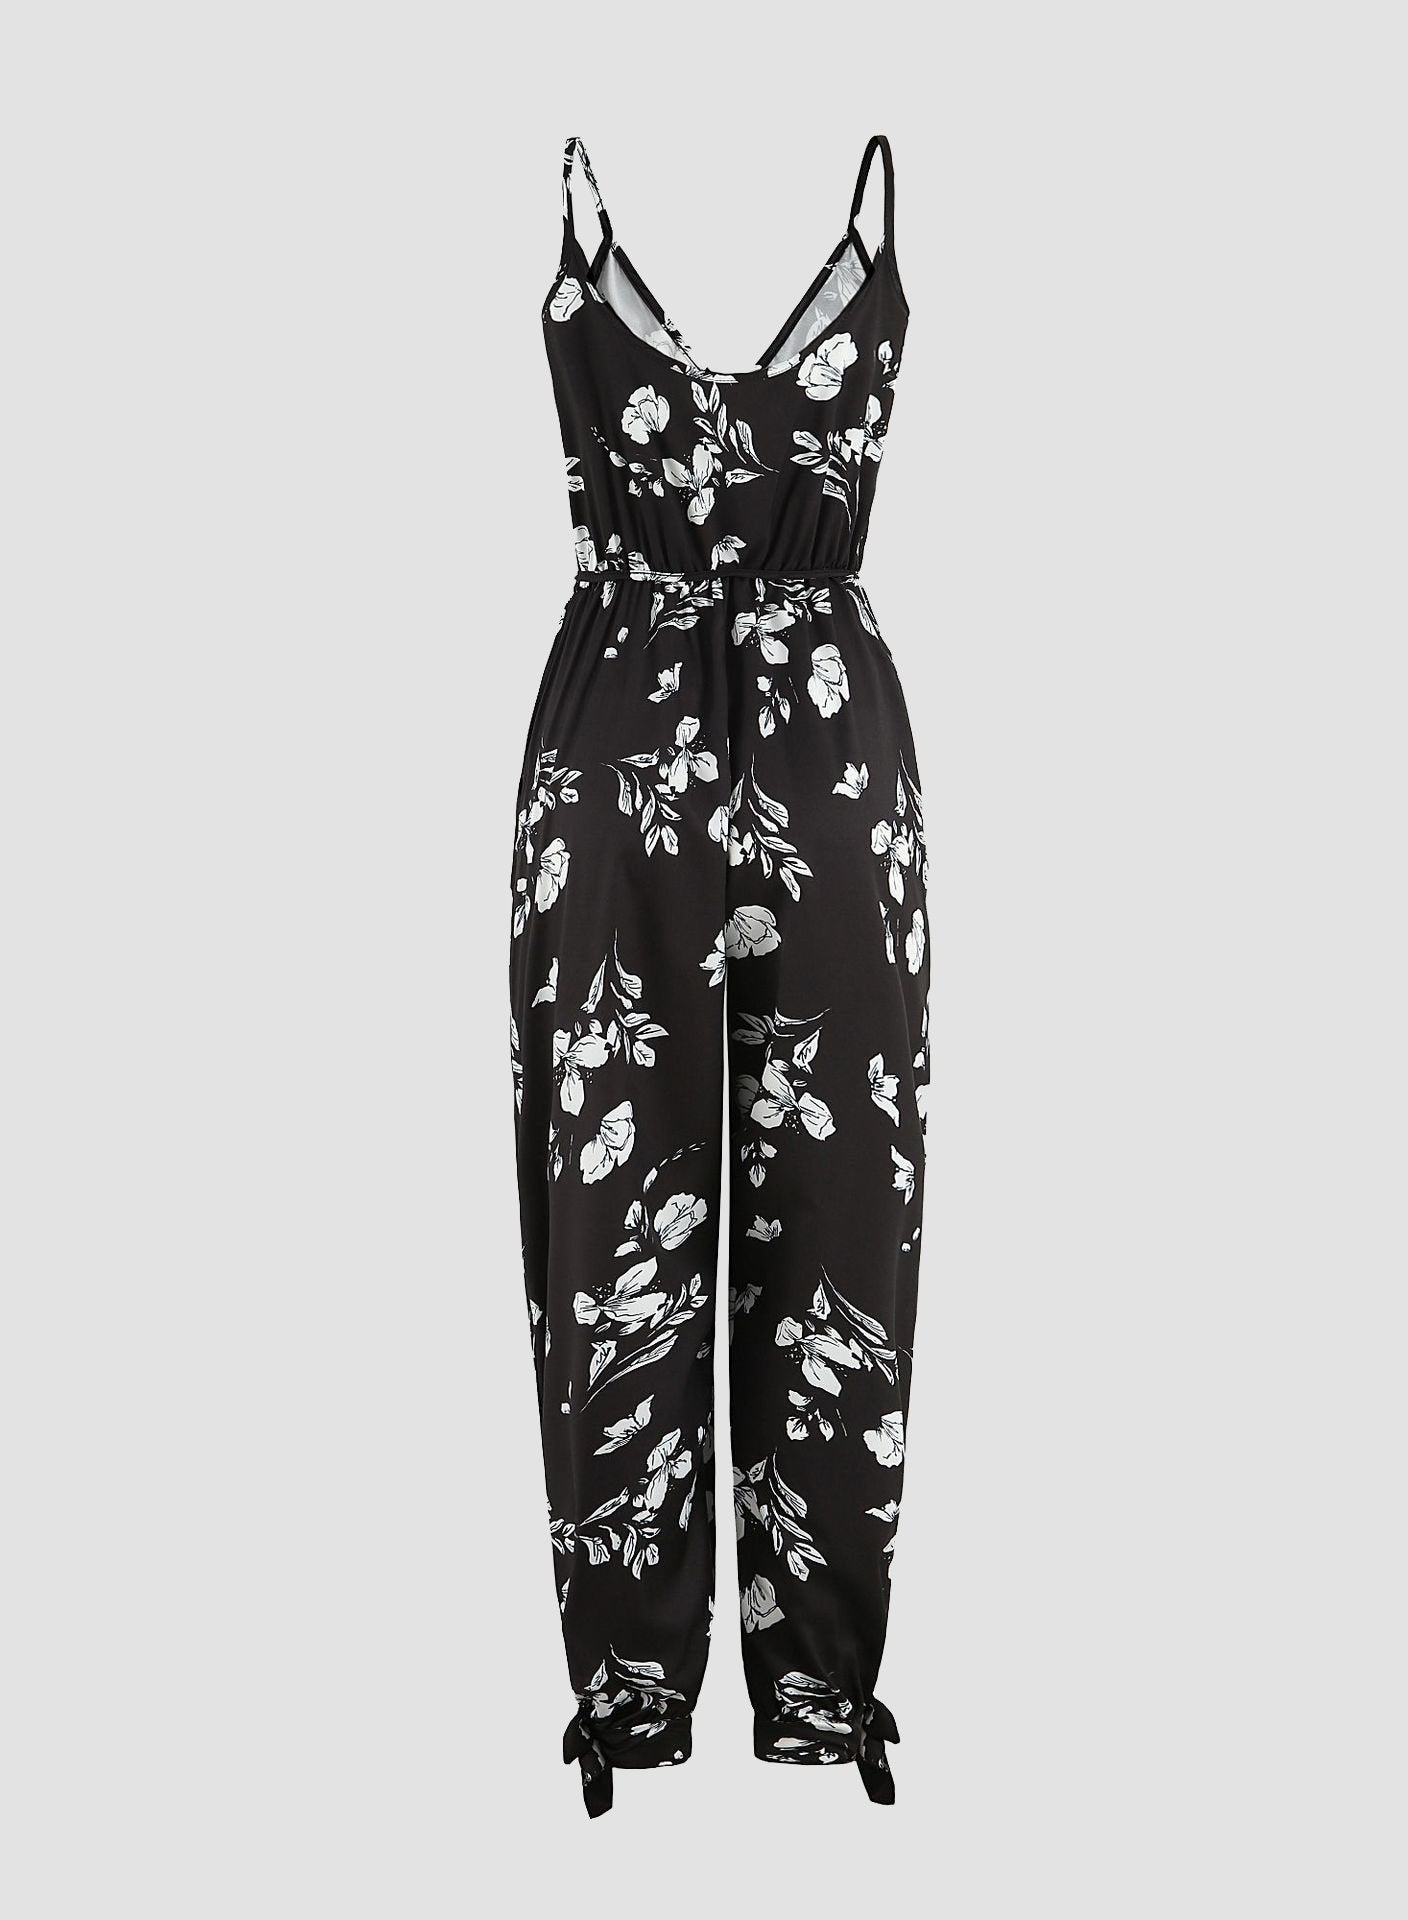 Plus Size 3XL V-neck Backless Sexy Jumpsuit